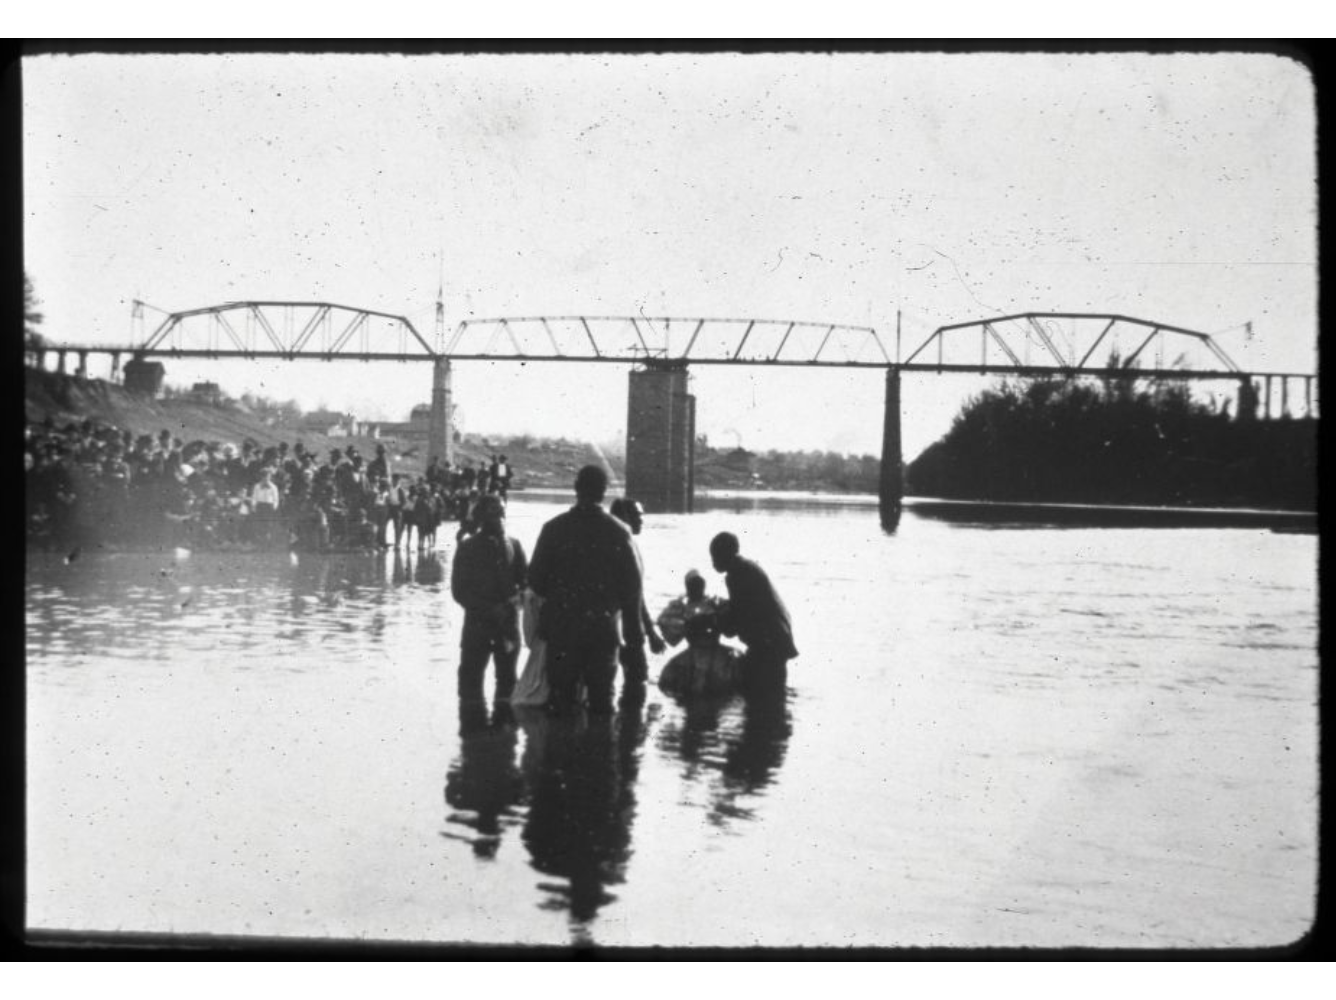 black and white photograph of a church baptismal service held on the Cumberland River with the Louisville & Nashville Railroad Bridge in the background. Participants are seen being submerged backwards into the water while church members watch along the bank of the river.